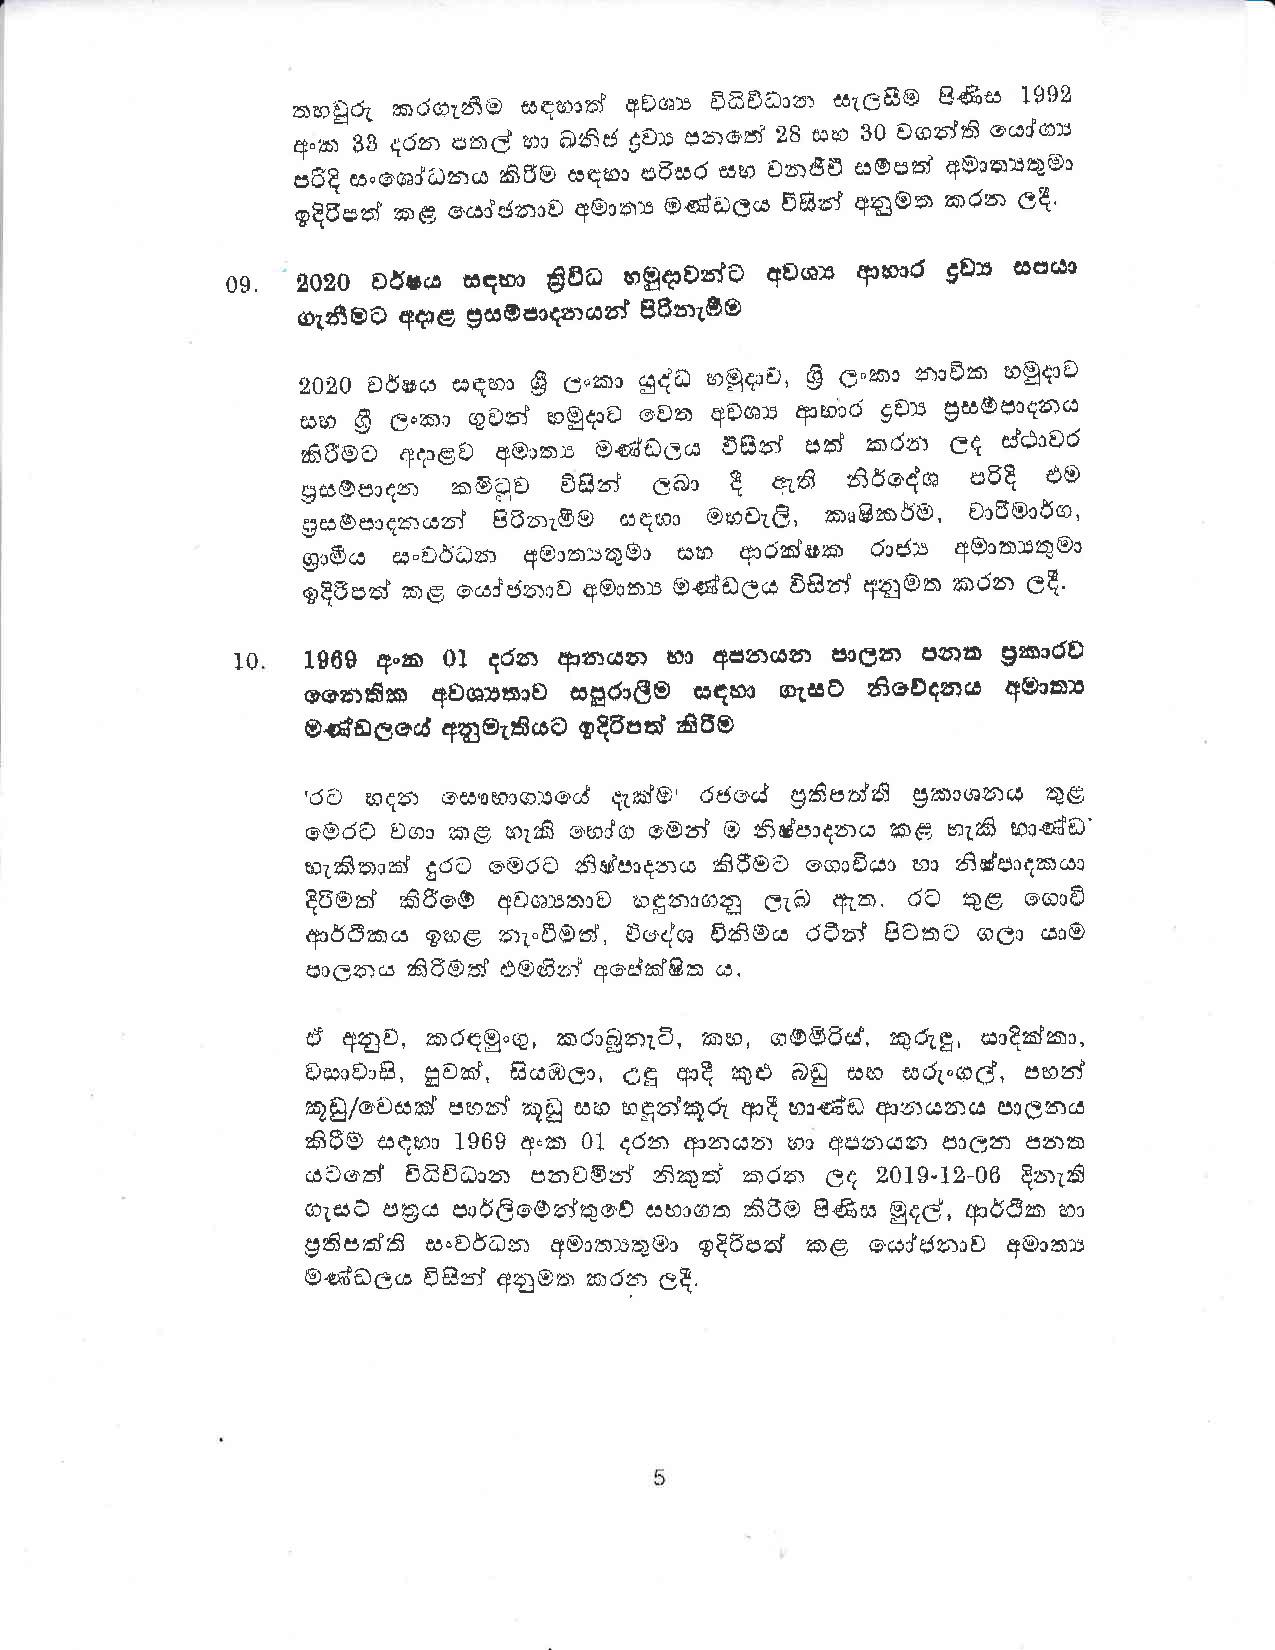 Cabinet Decision on 18.12.2019 page 005